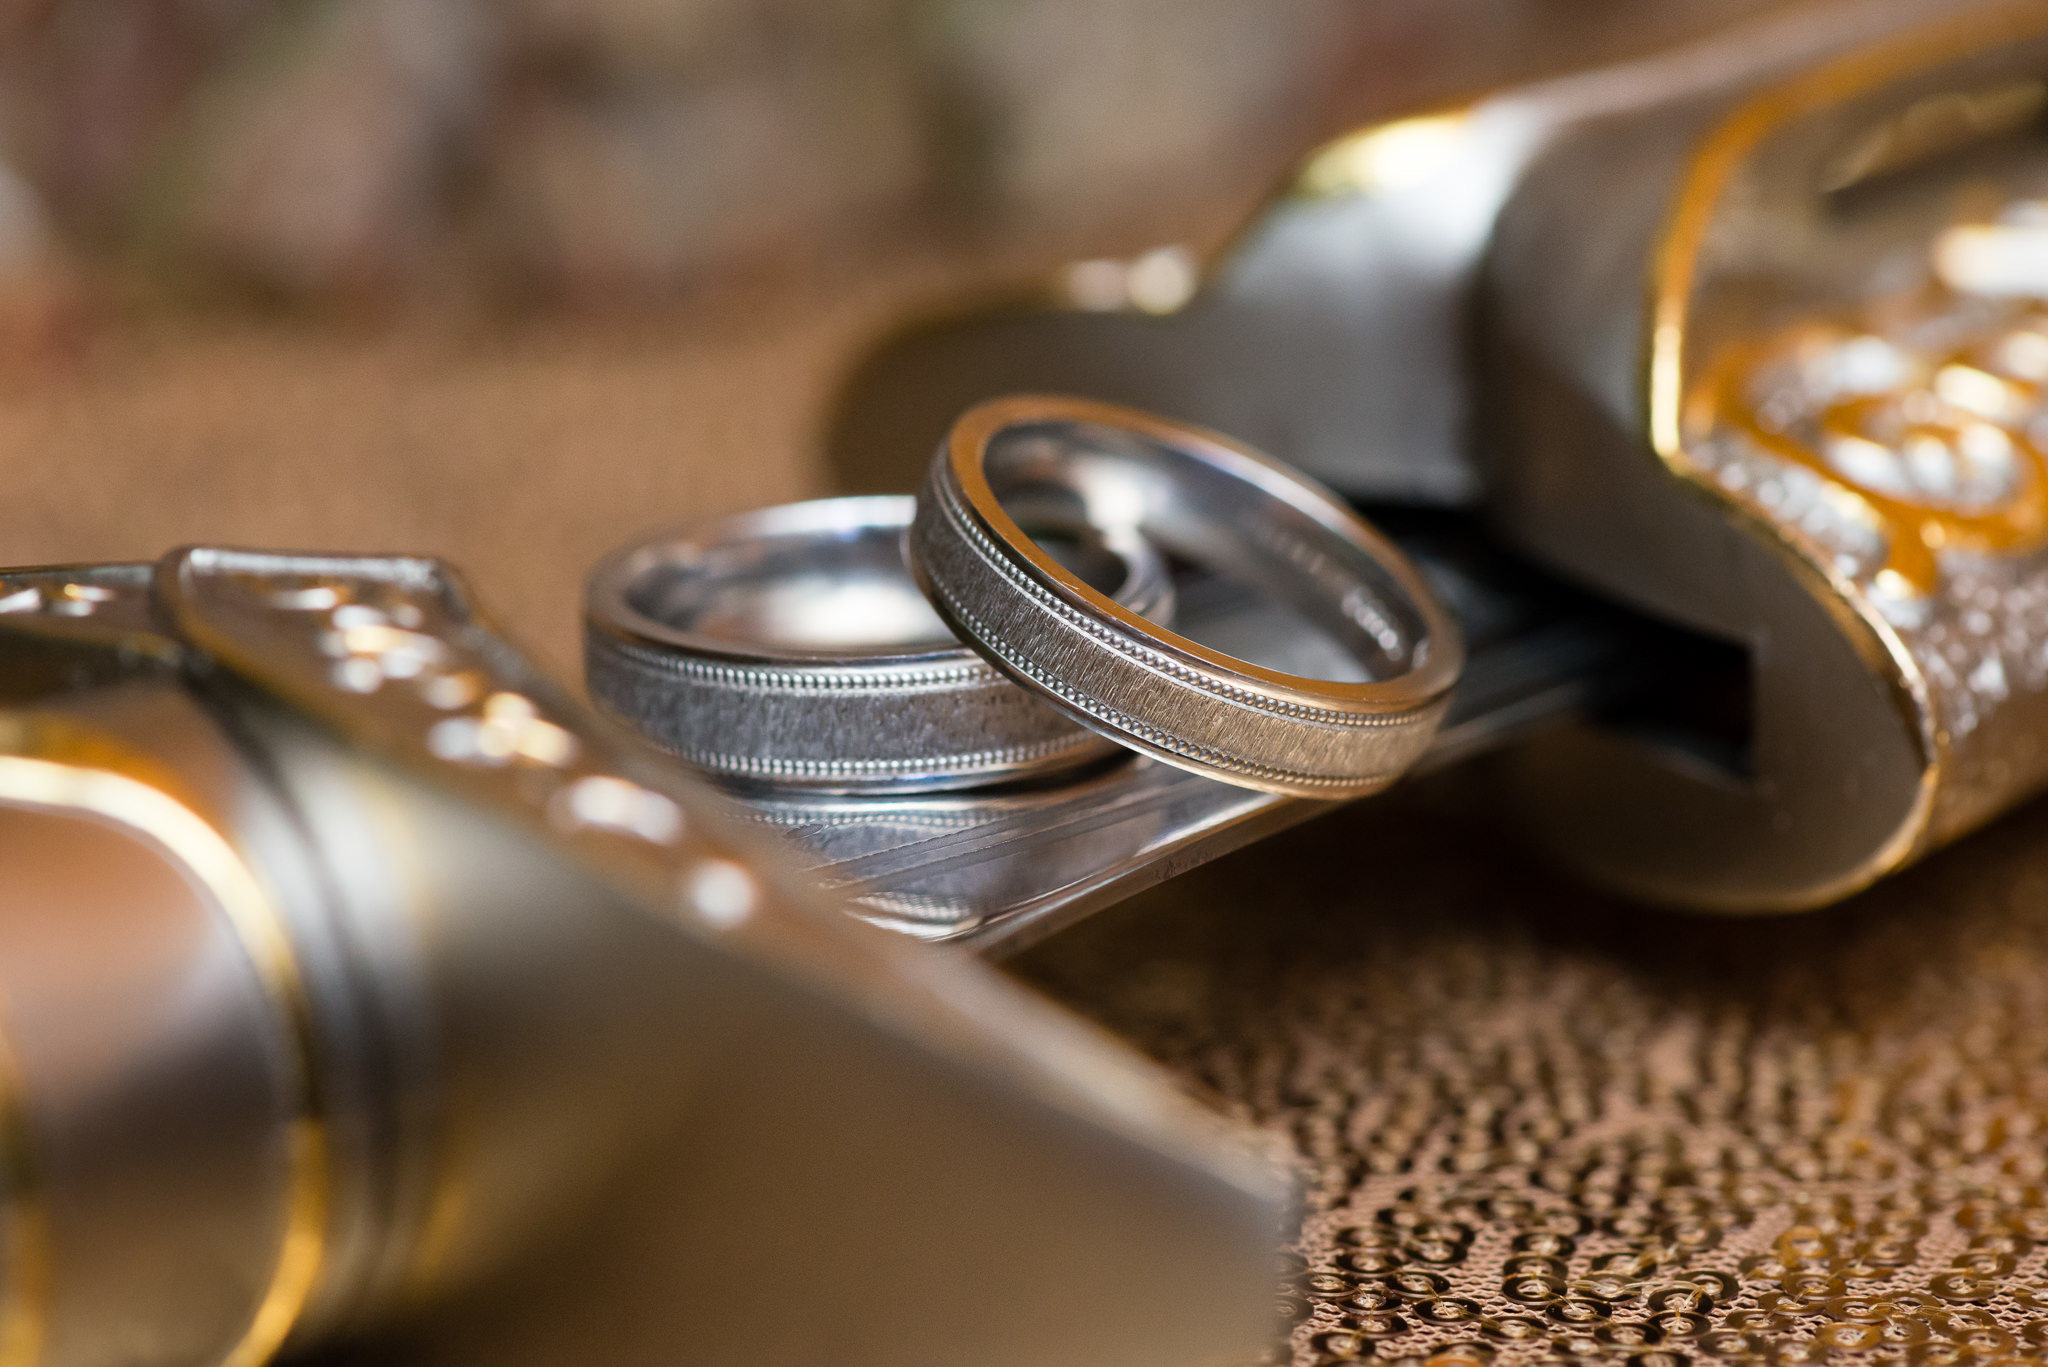 The bride and groom's wedding rings pictured on a sword